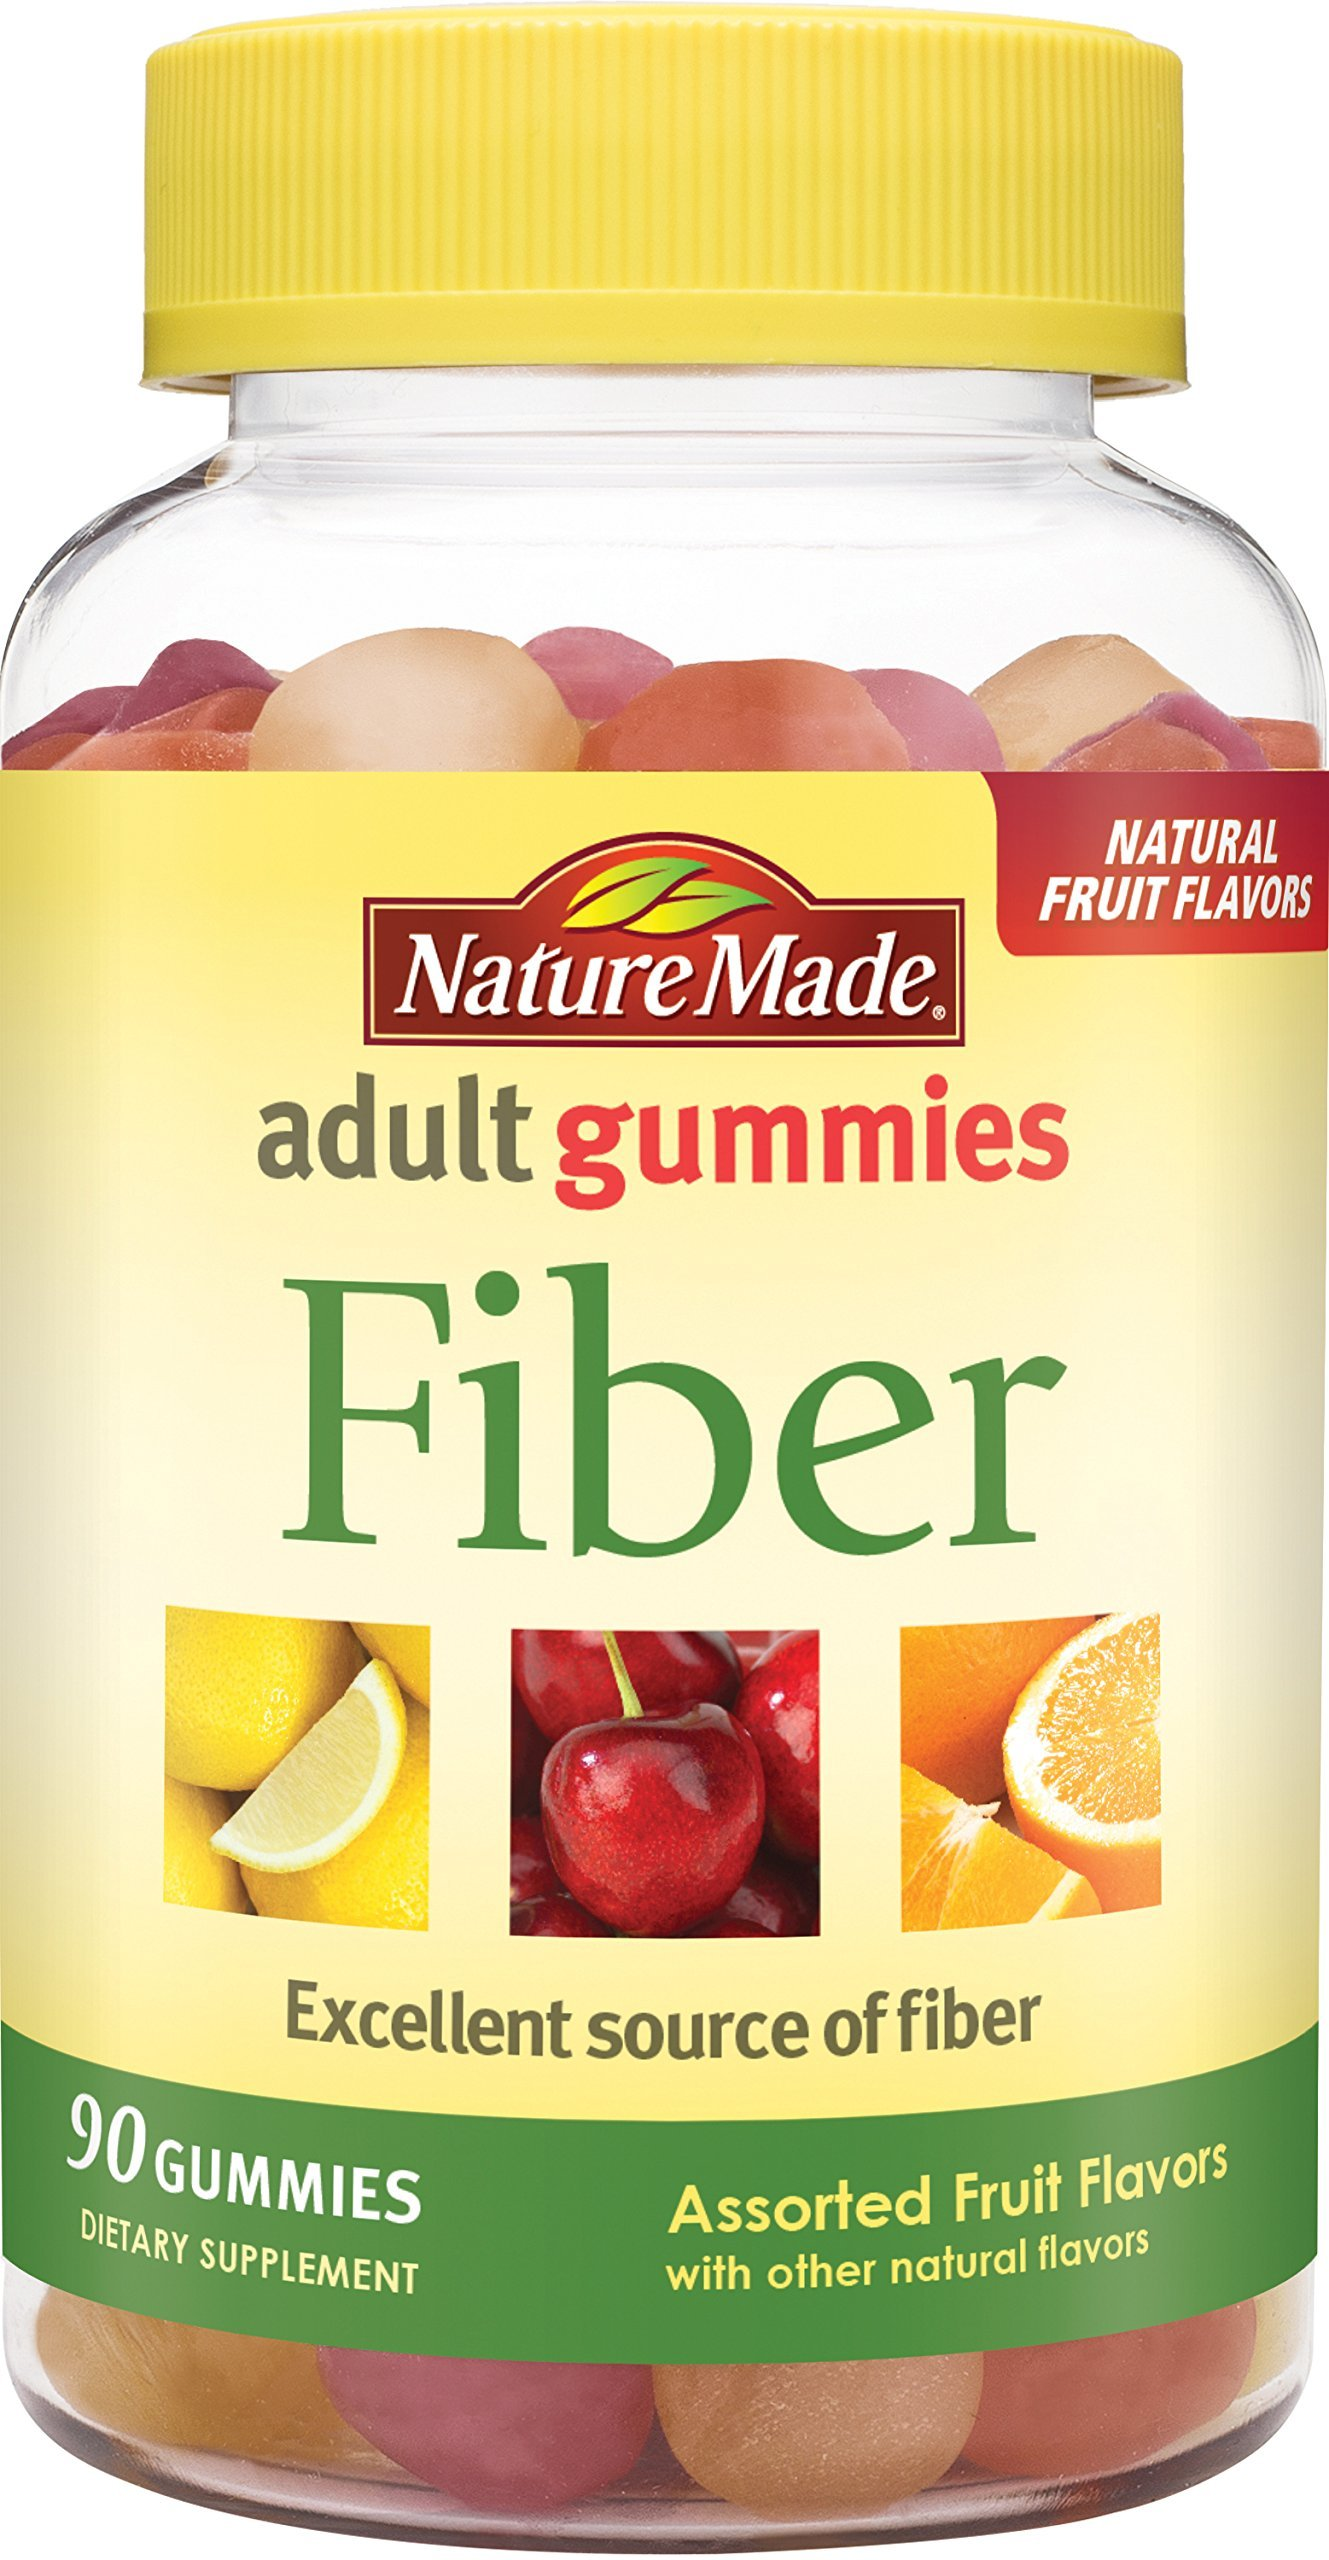 Nature Made Fiber Adult Gummies 90 Count w. 6 g of Inulin Dietary Fiber per serving